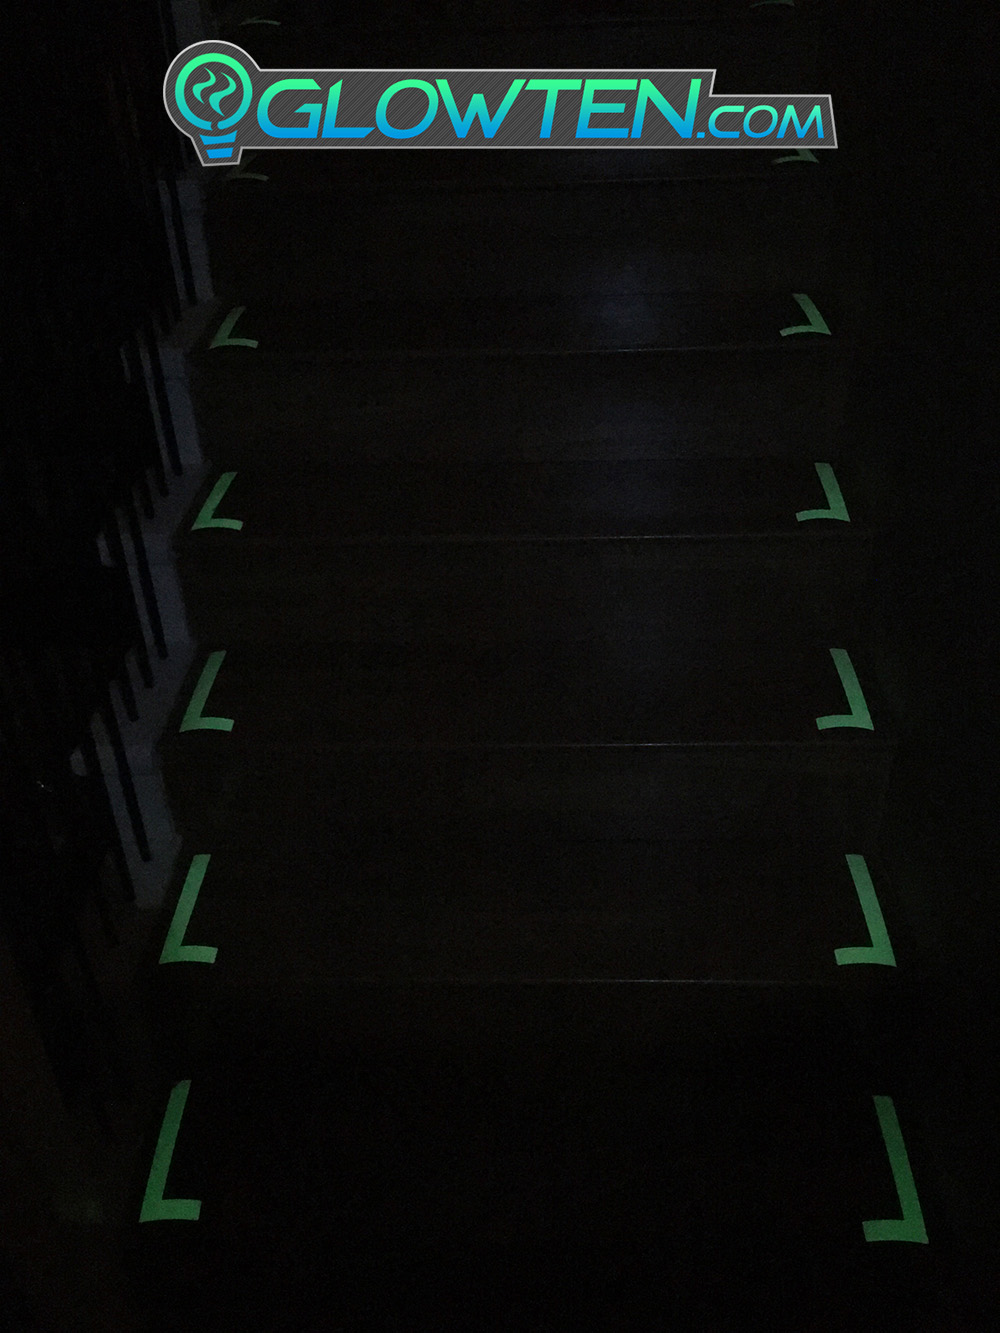 GLOWTEN.com - High Luminous Tape Stairs Guide Outline Glow In The Dark Stairs Guide Green Angle Left Right Sign Lite Green Tape Adhesive picture photo cap preview pic image search 4